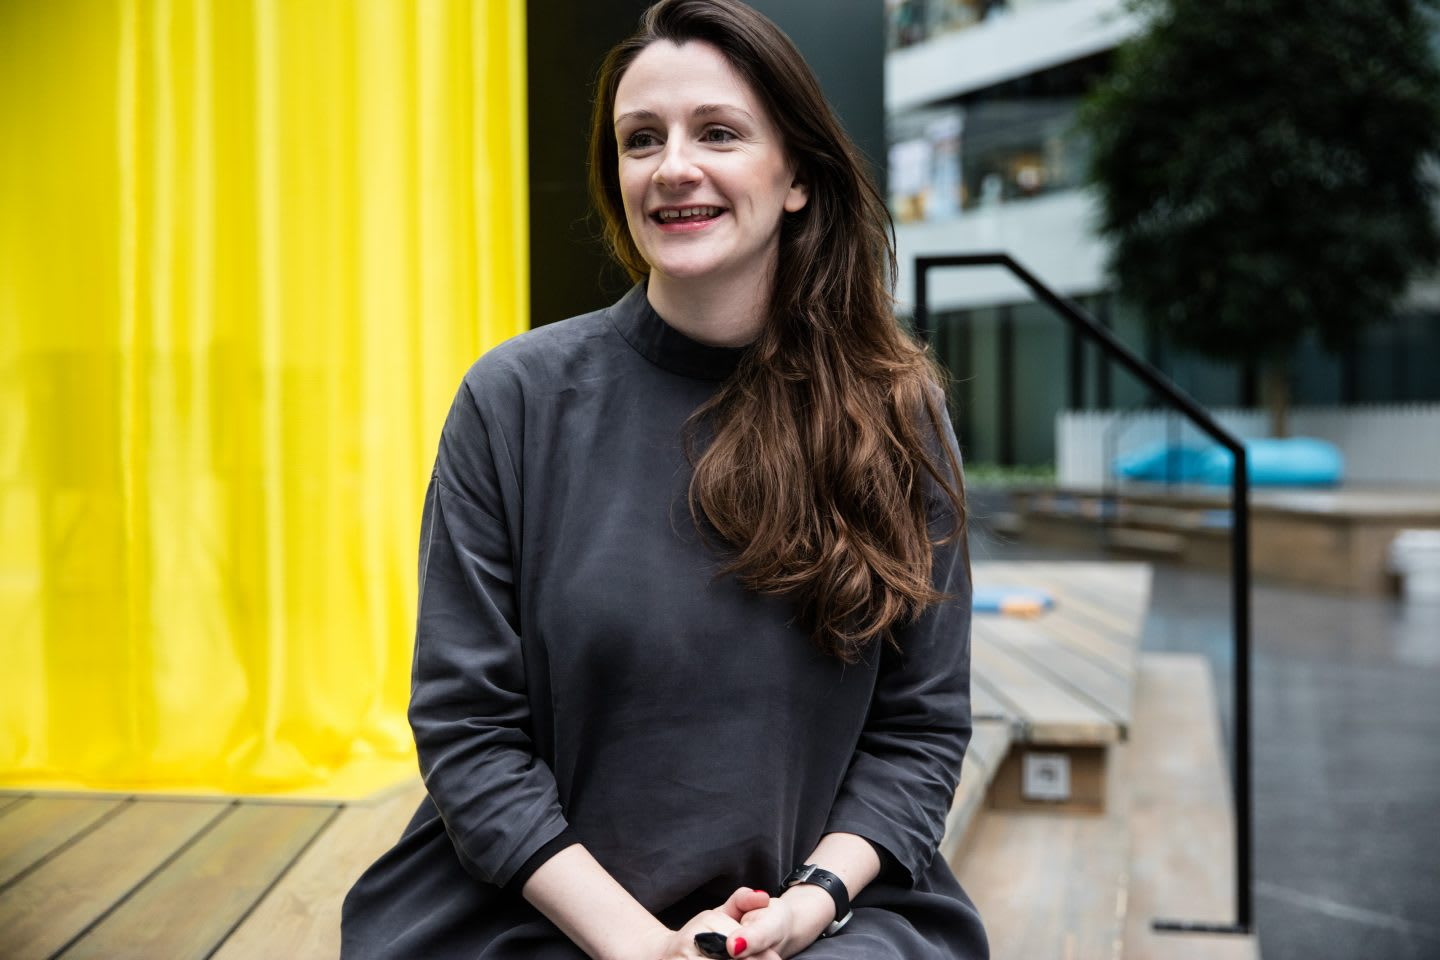 Woman sitting on a bench laughing at the adidas HQ. Lauren Currie, entrepreneur, public speaking, diversity, confidence, interview, GamePlan A